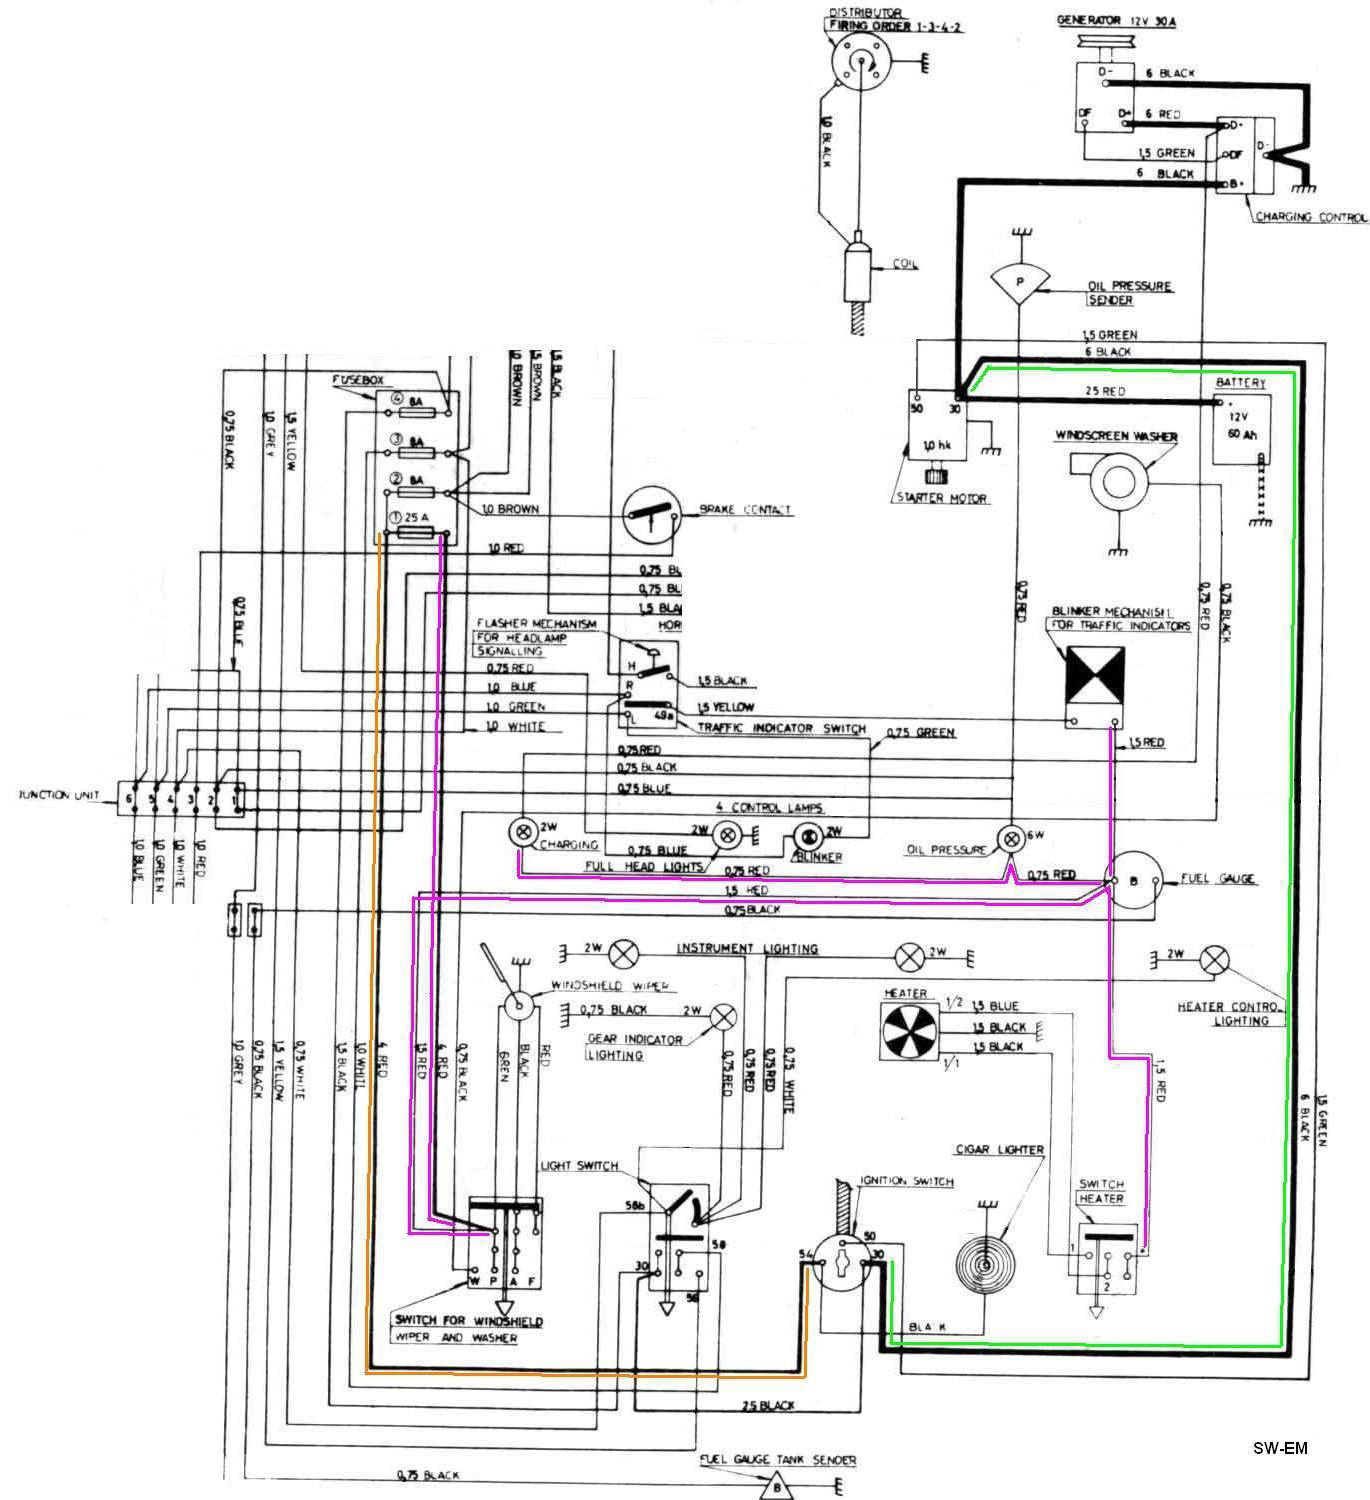 DIAGRAM] Volvo S80 Ignition Wiring Diagram FULL Version HD Quality Wiring  Diagram - BWSMECHANICAL.PRIMOCIRCOLOUMBERTIDE.ITprimocircoloumbertide.it